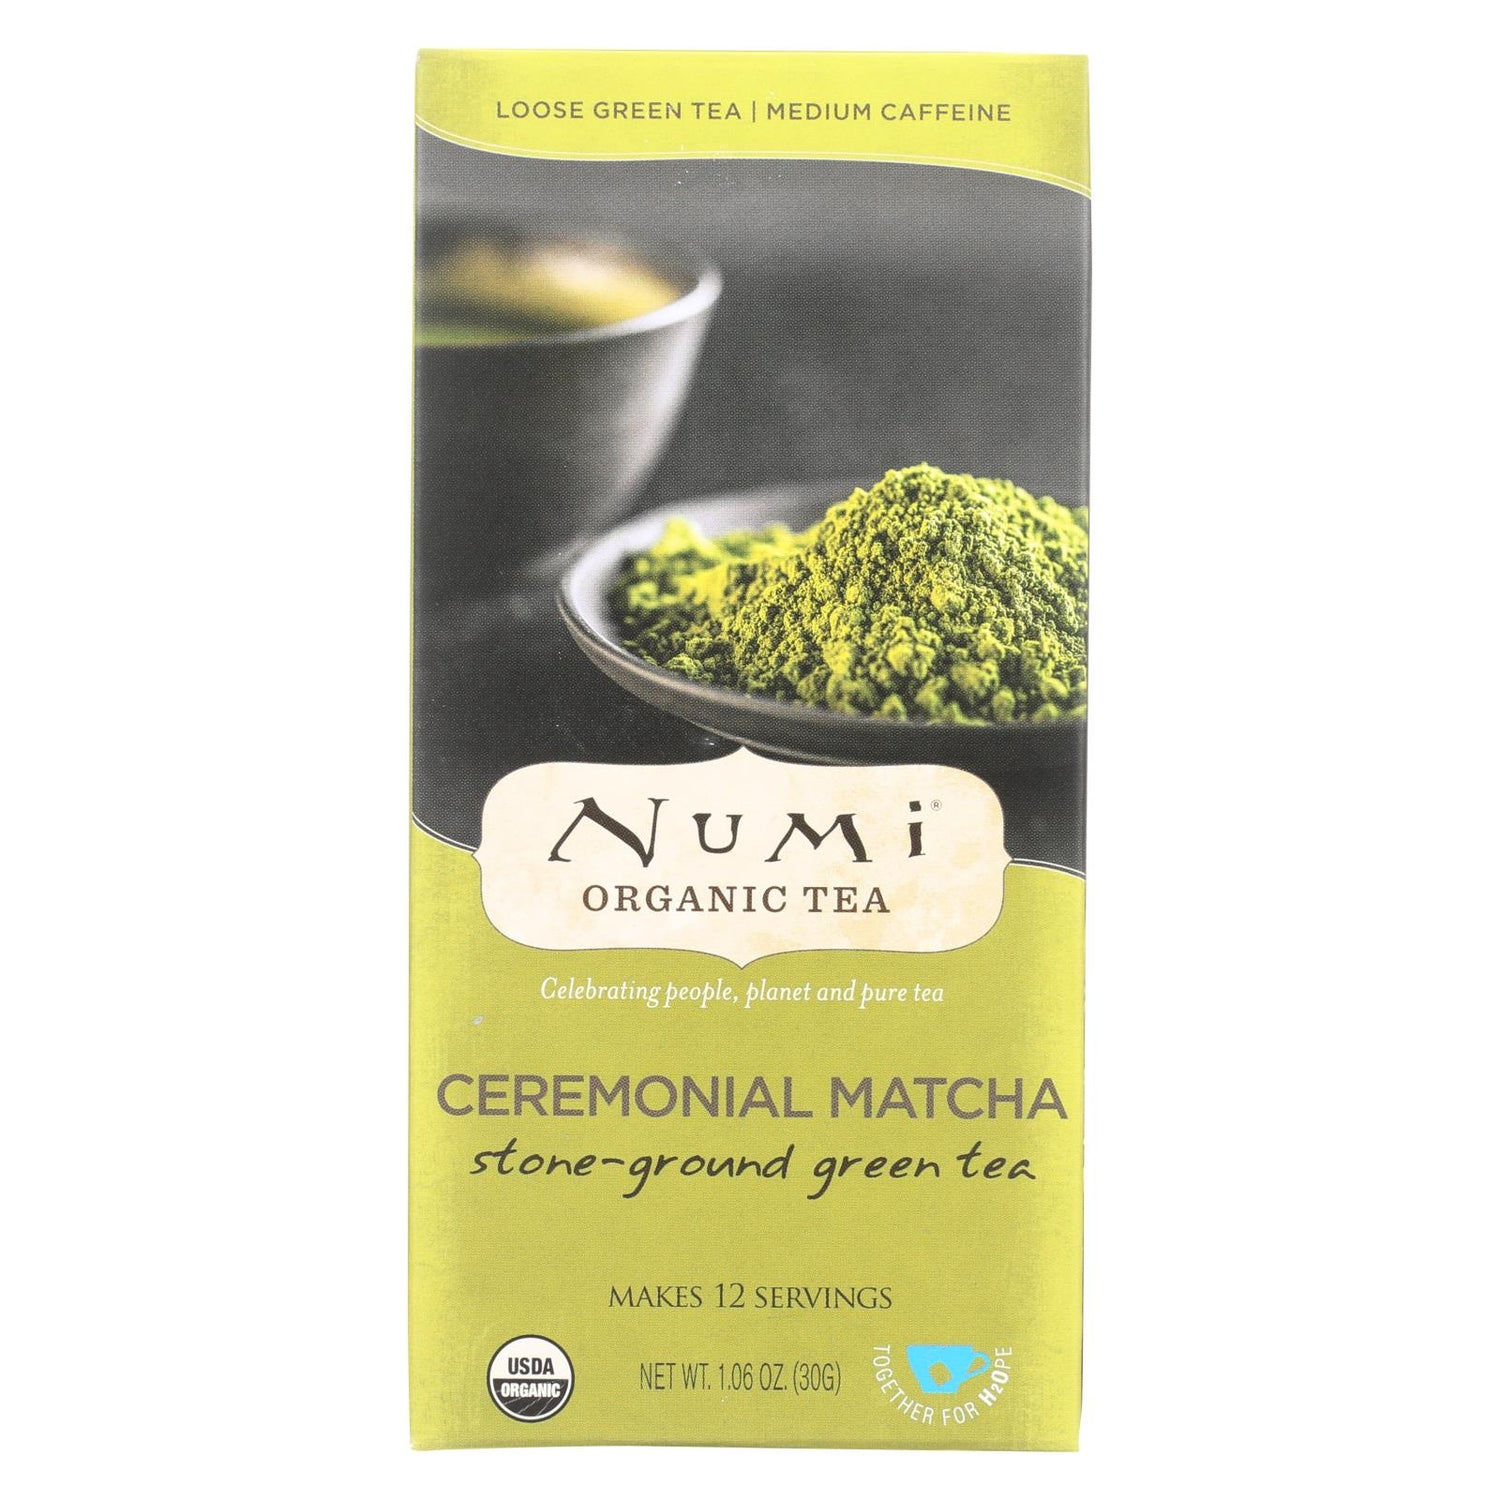 Numi Tea Ceremonial Matcha - Organic - Case Of 6 - 1.06 Oz